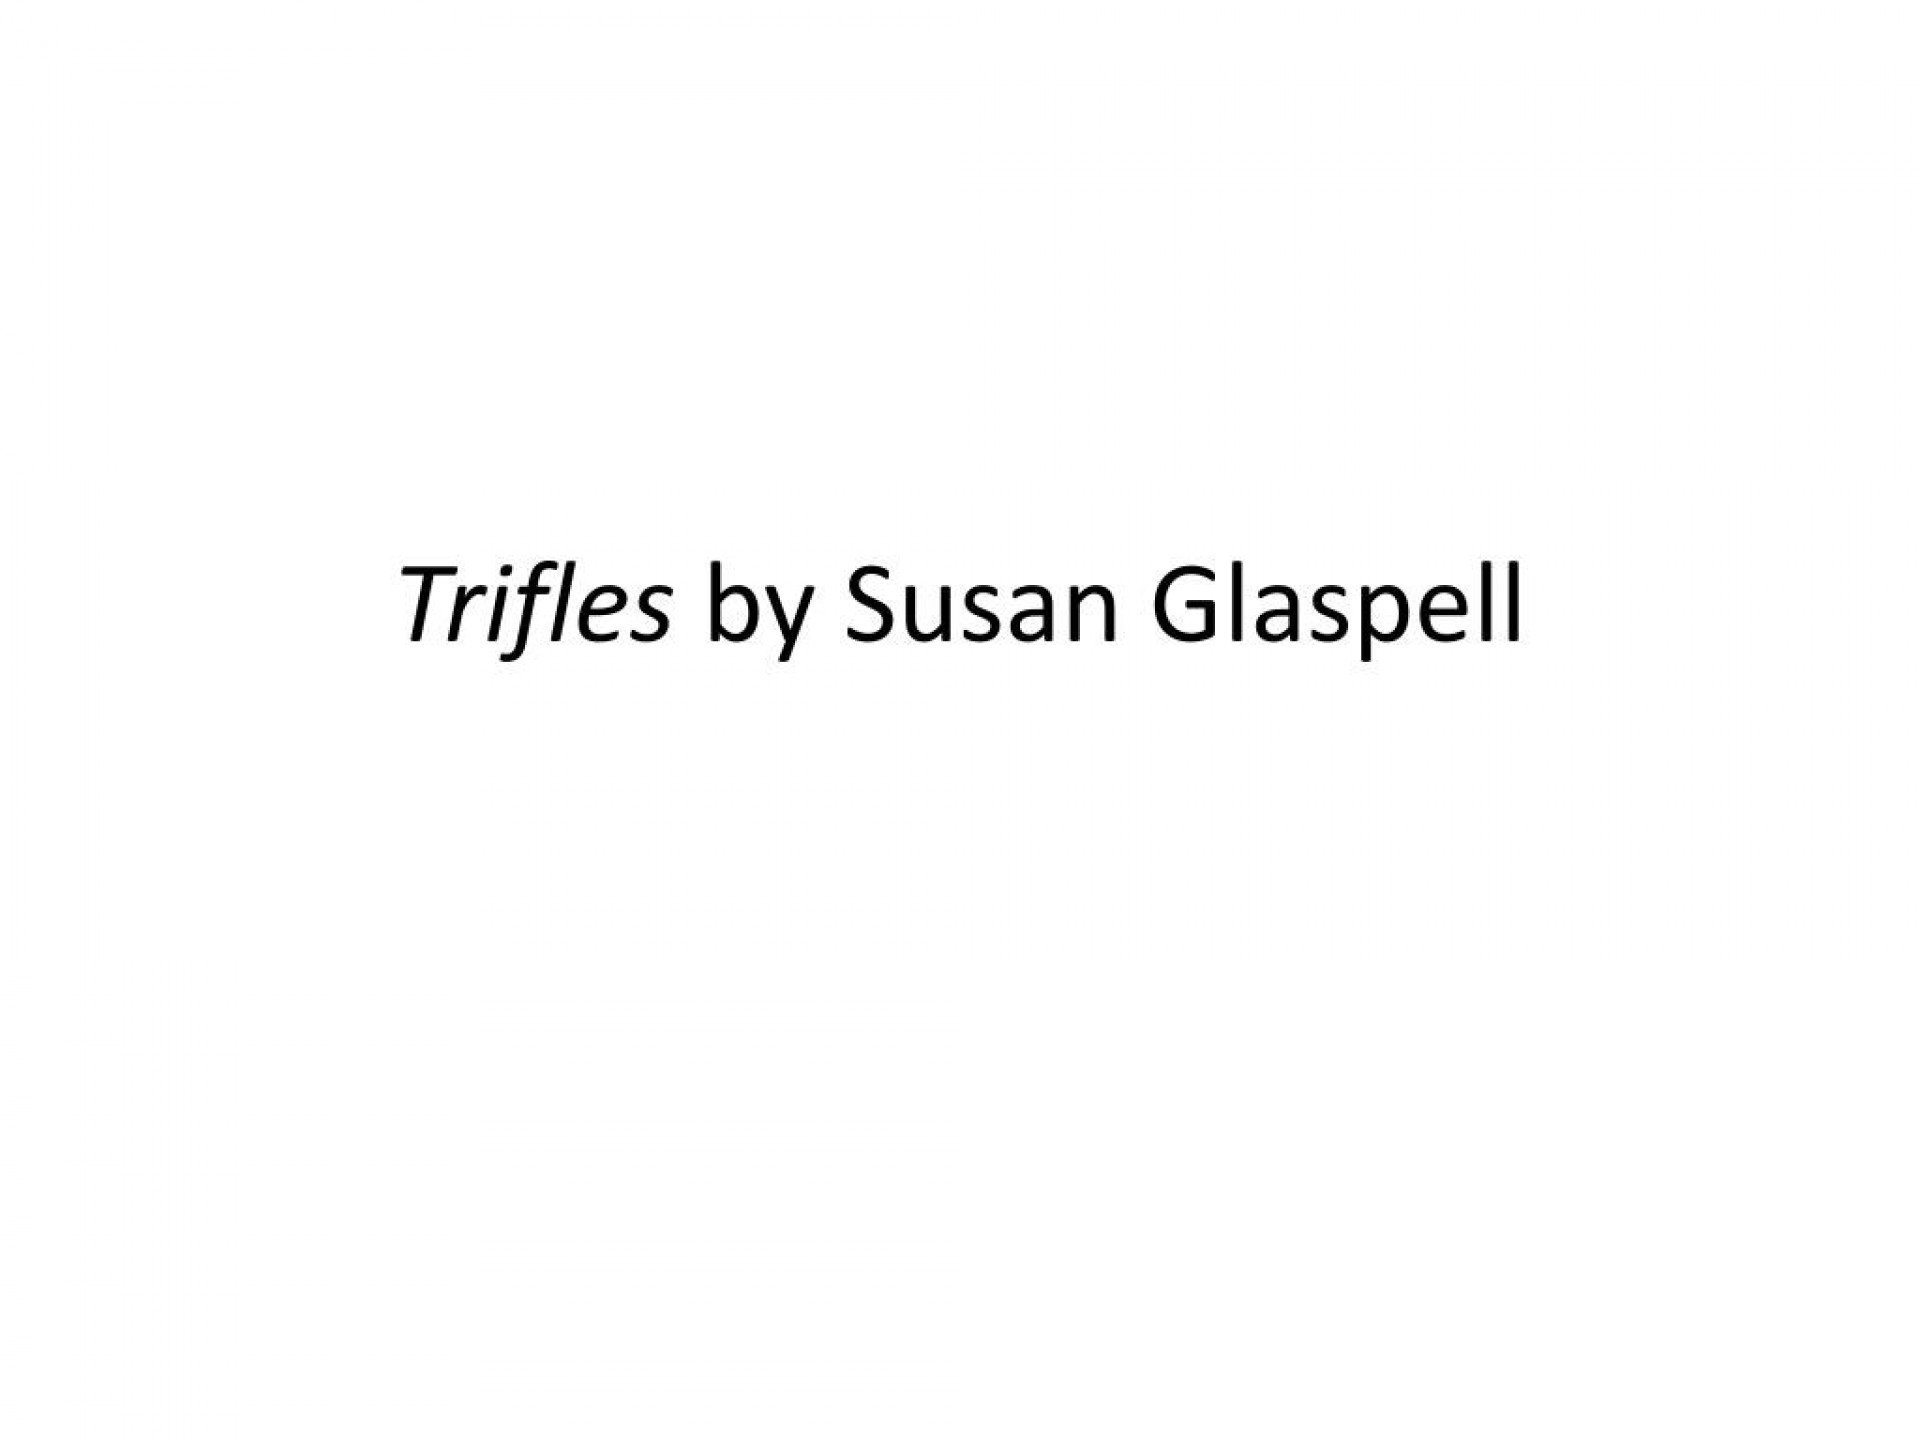 015 Trifles By Susan Glaspell L Essay Formidable On Gender Roles Pdf Examples 1920